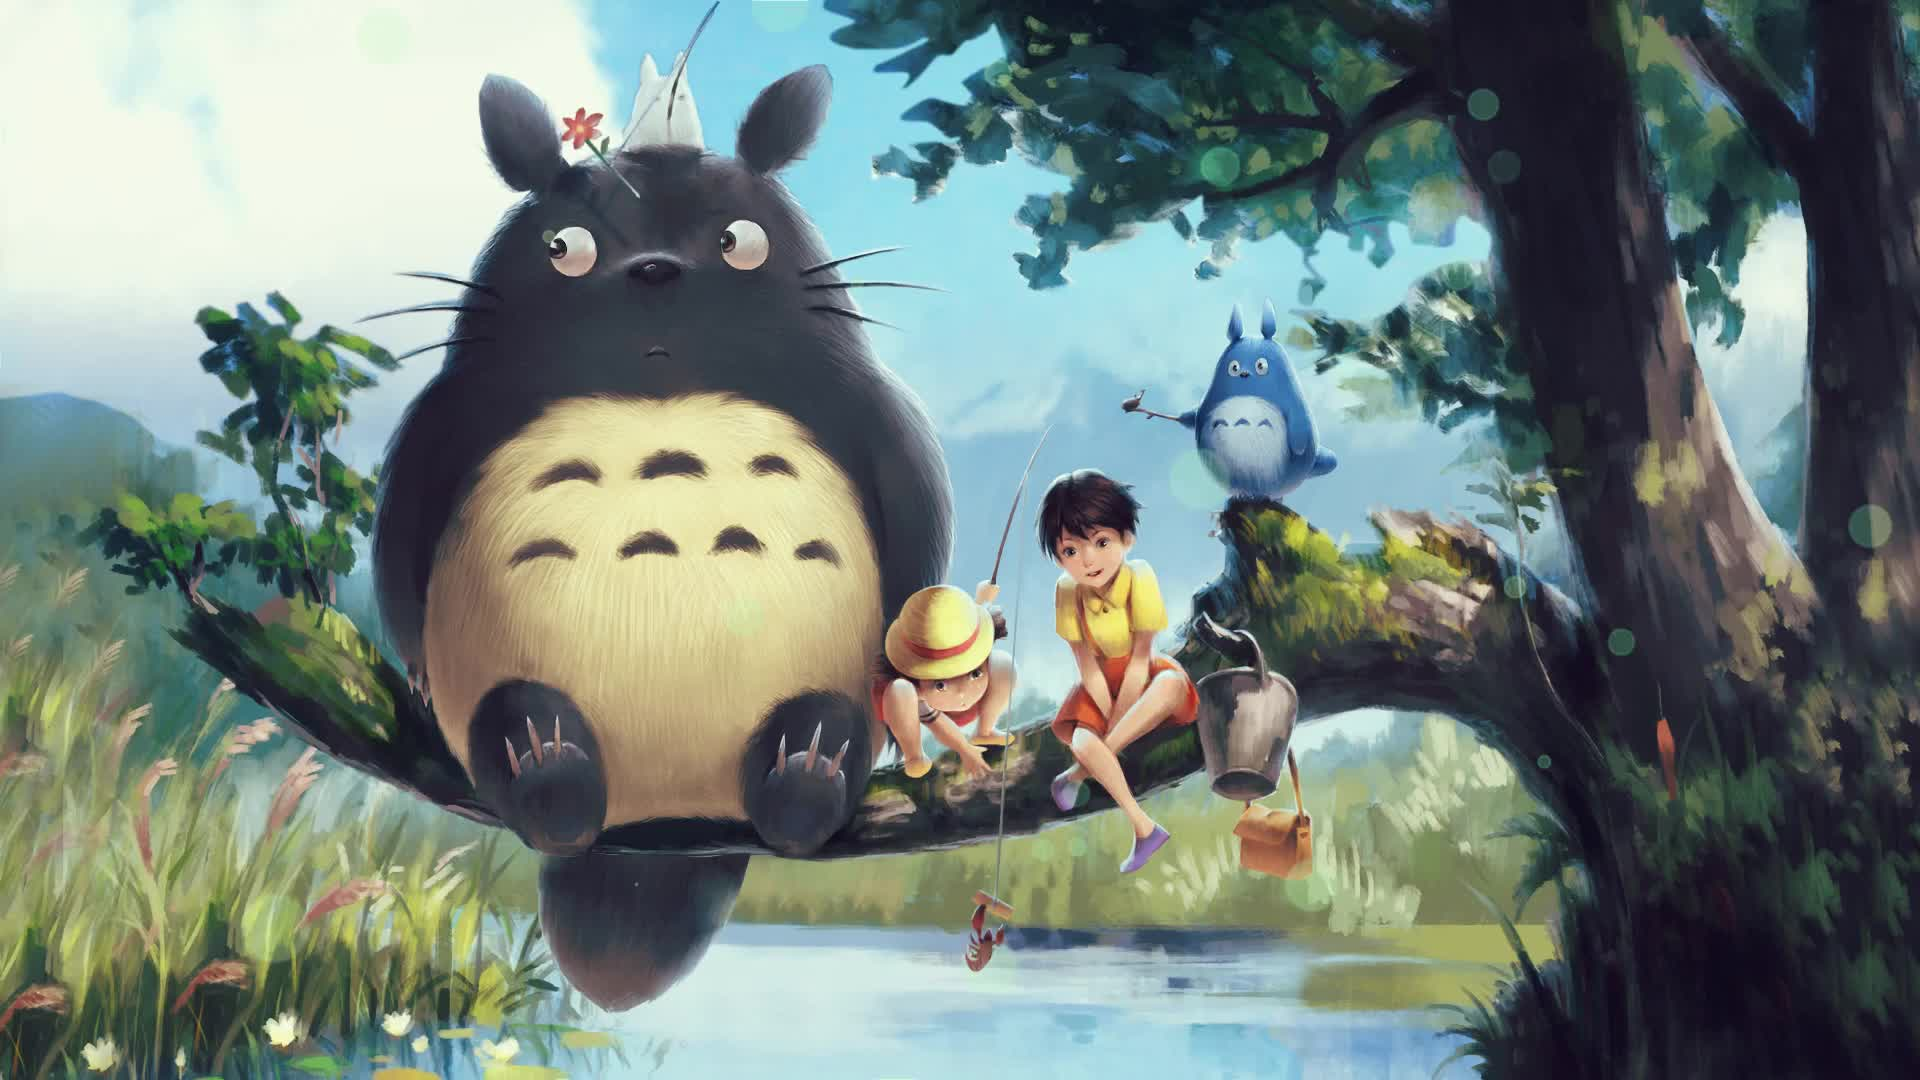 My Neighbour Totoro Wallpapers Top Free My Neighbour Totoro Backgrounds Wallpaperaccess